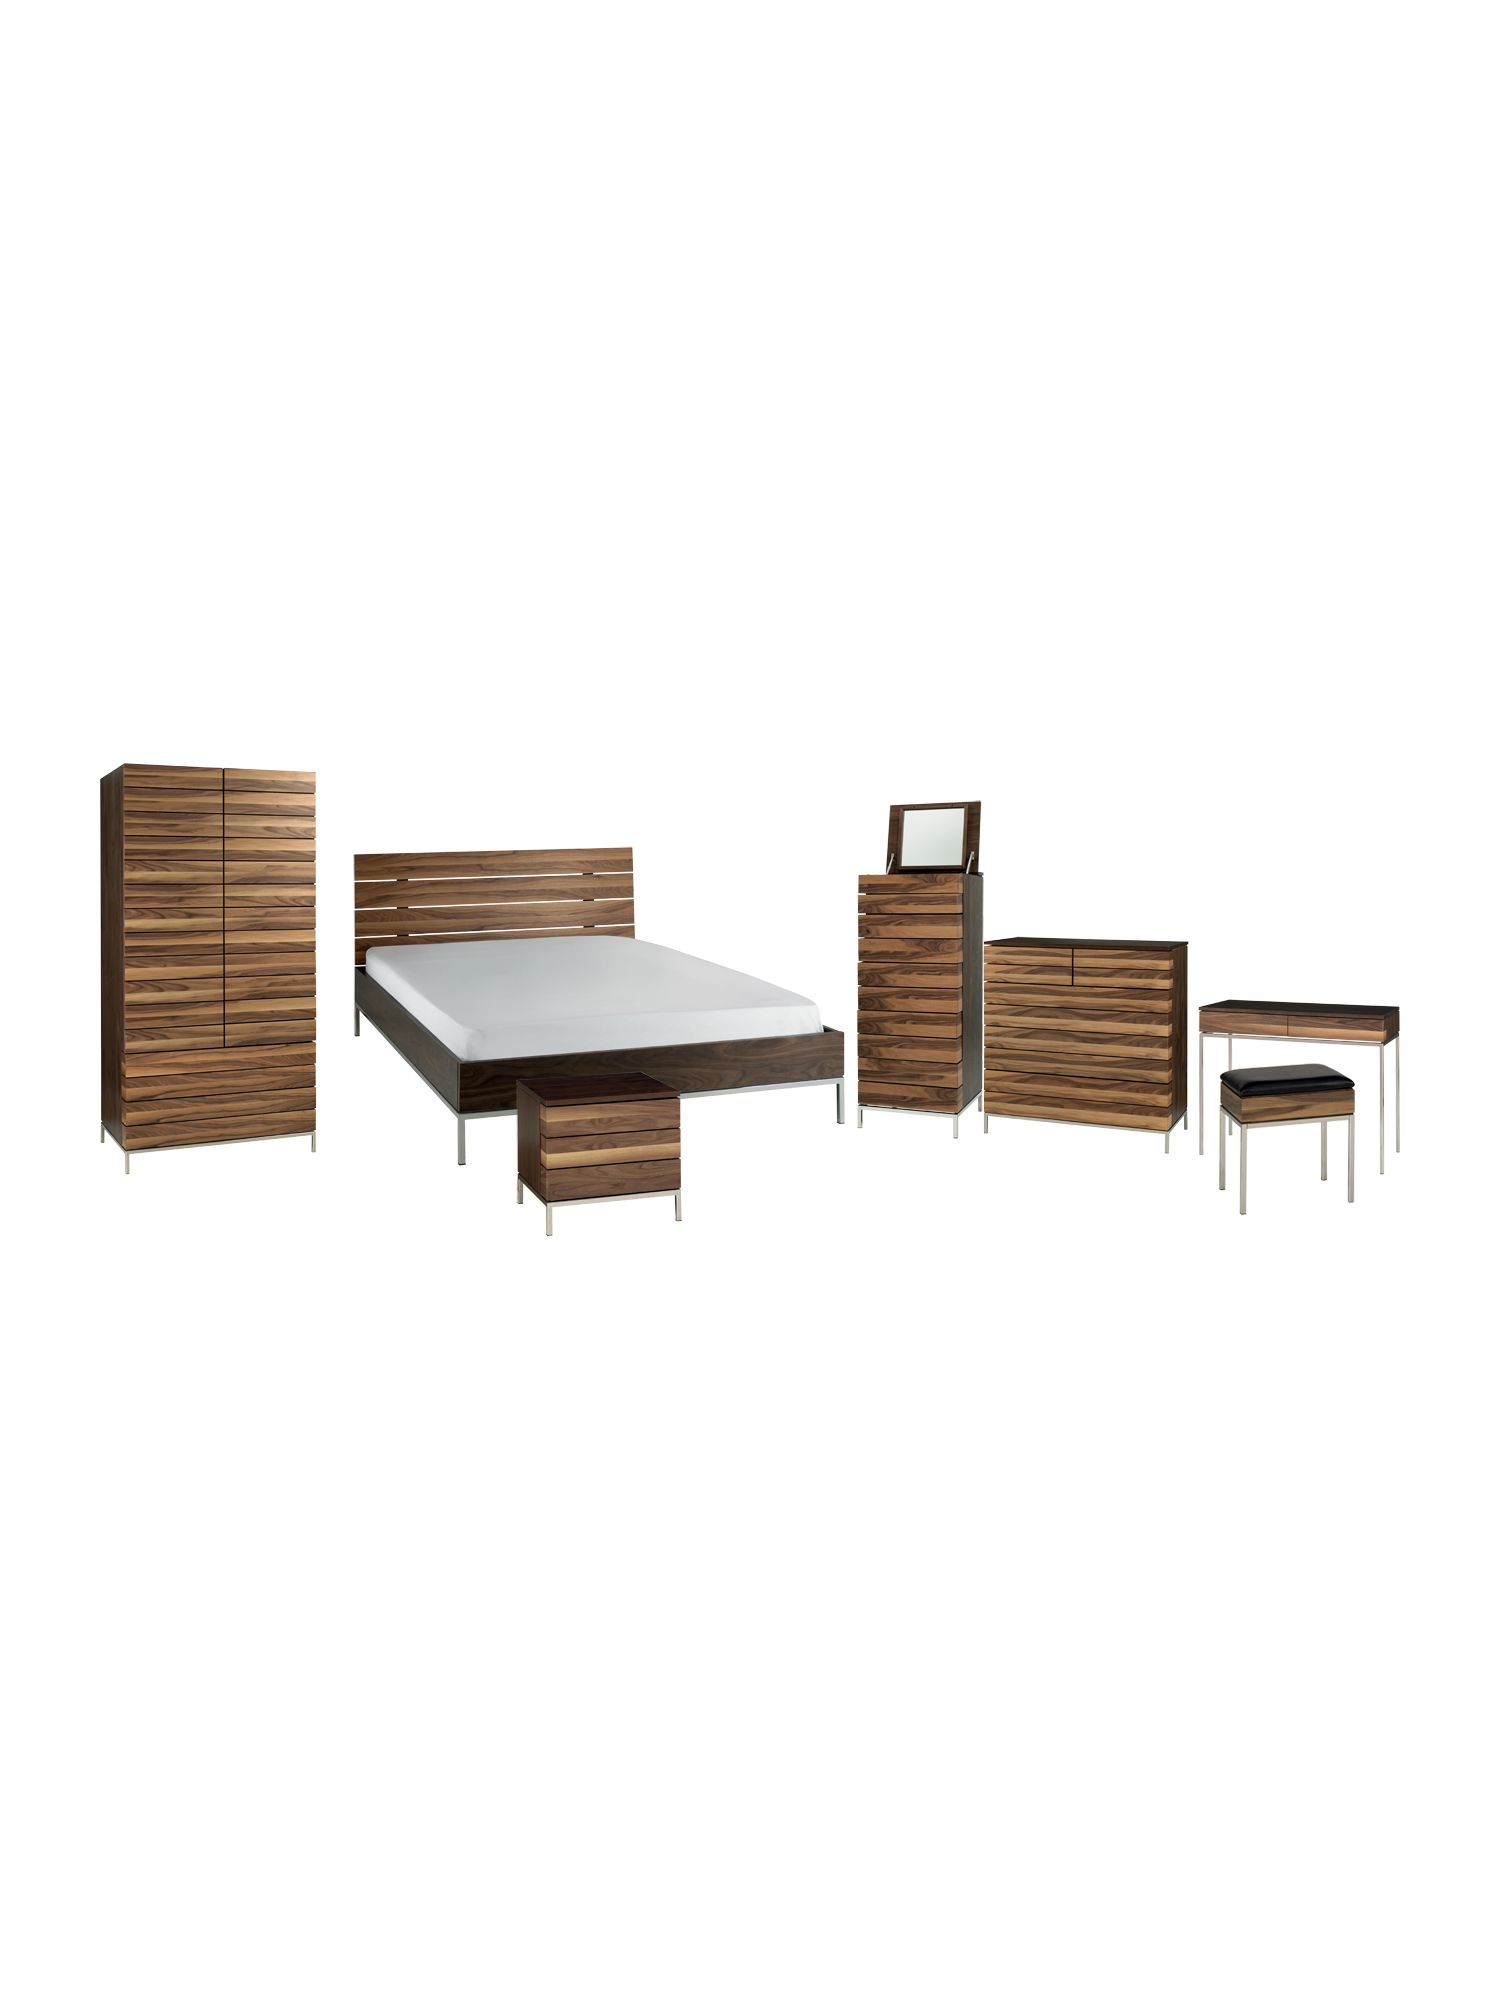 Dalston Bedroom Furniture Range